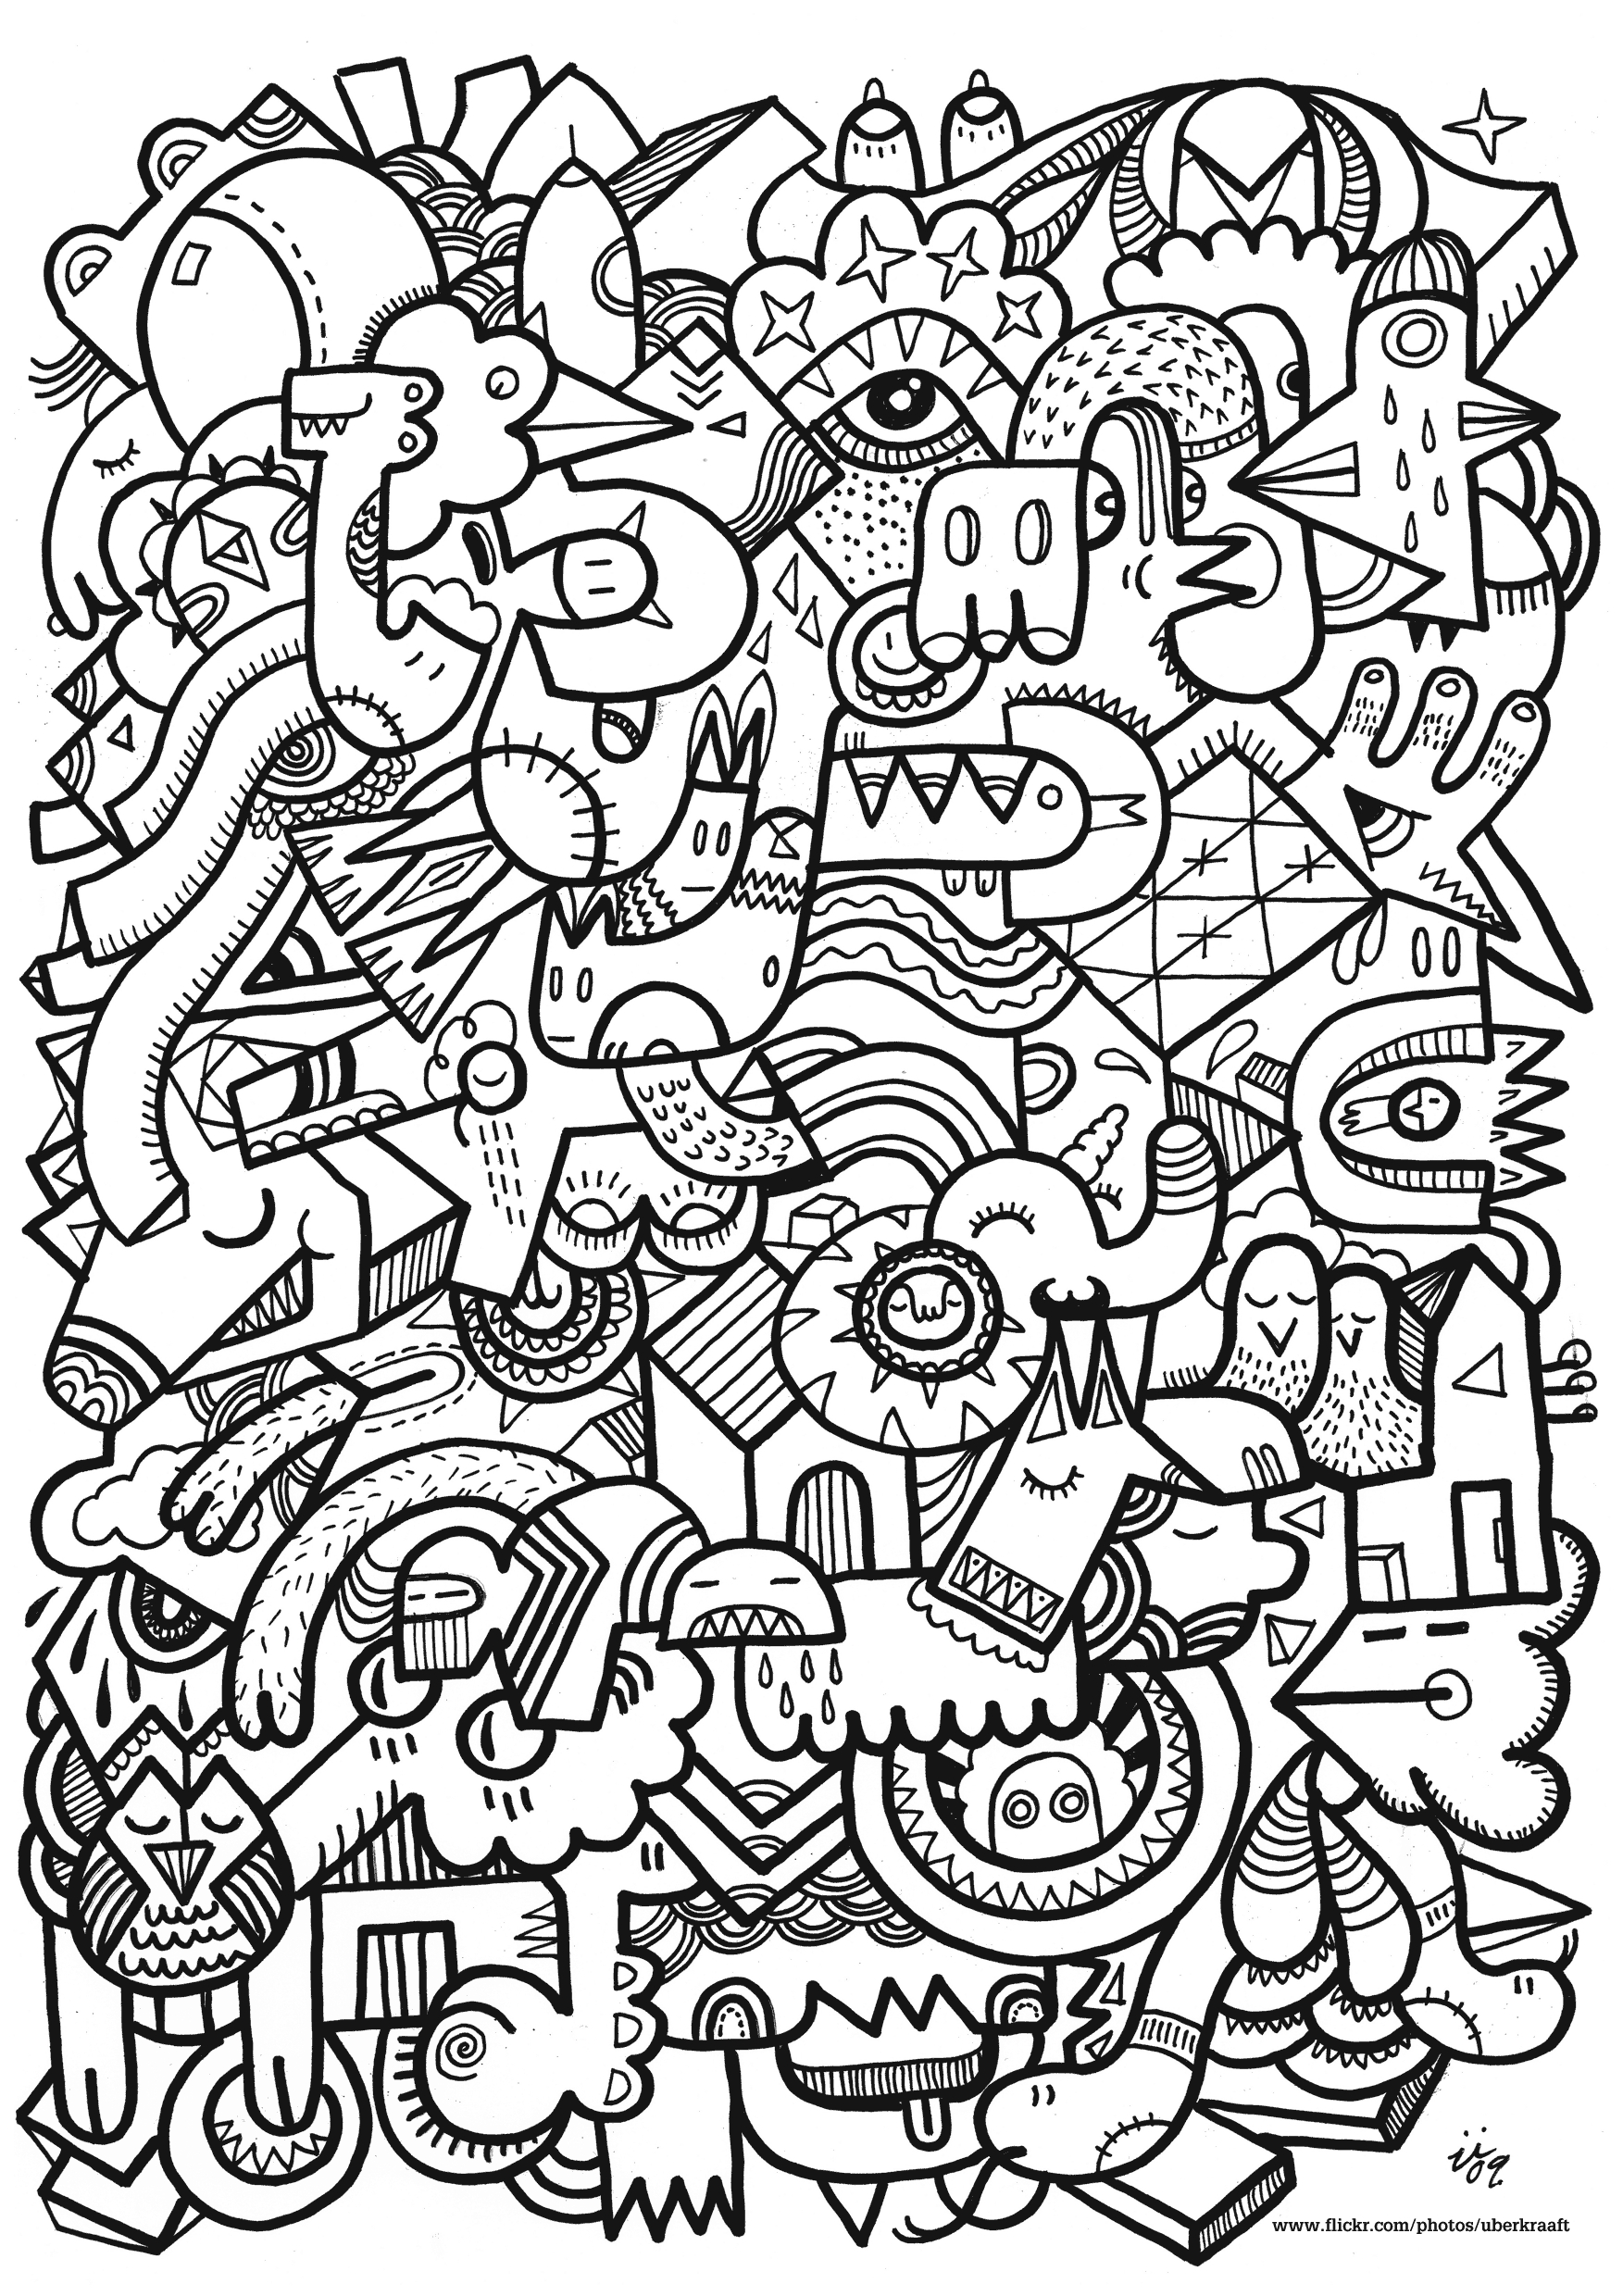 Adult Coloring Pages To Print For Children Adult Kids Coloring Pages